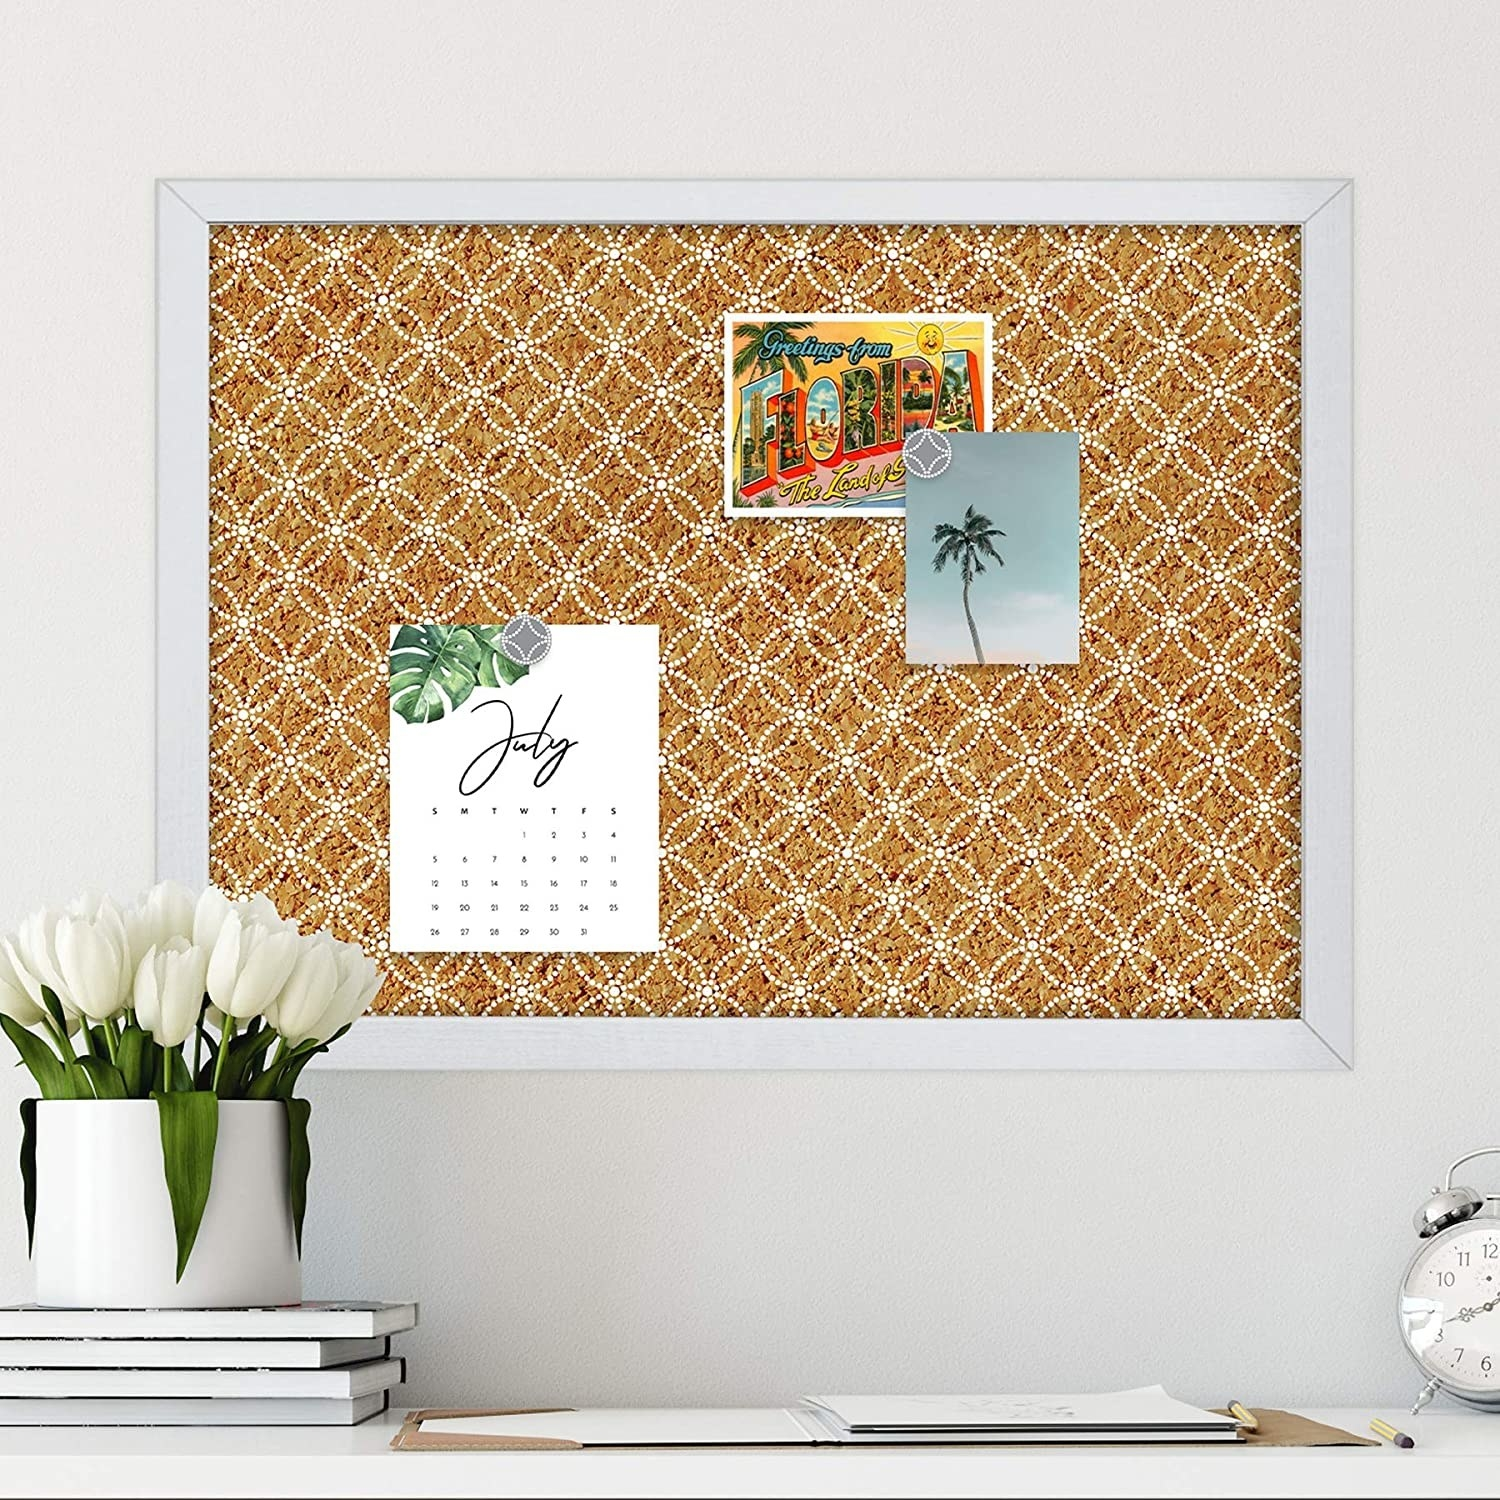 A patterned cork board with postcards and a calendar on it